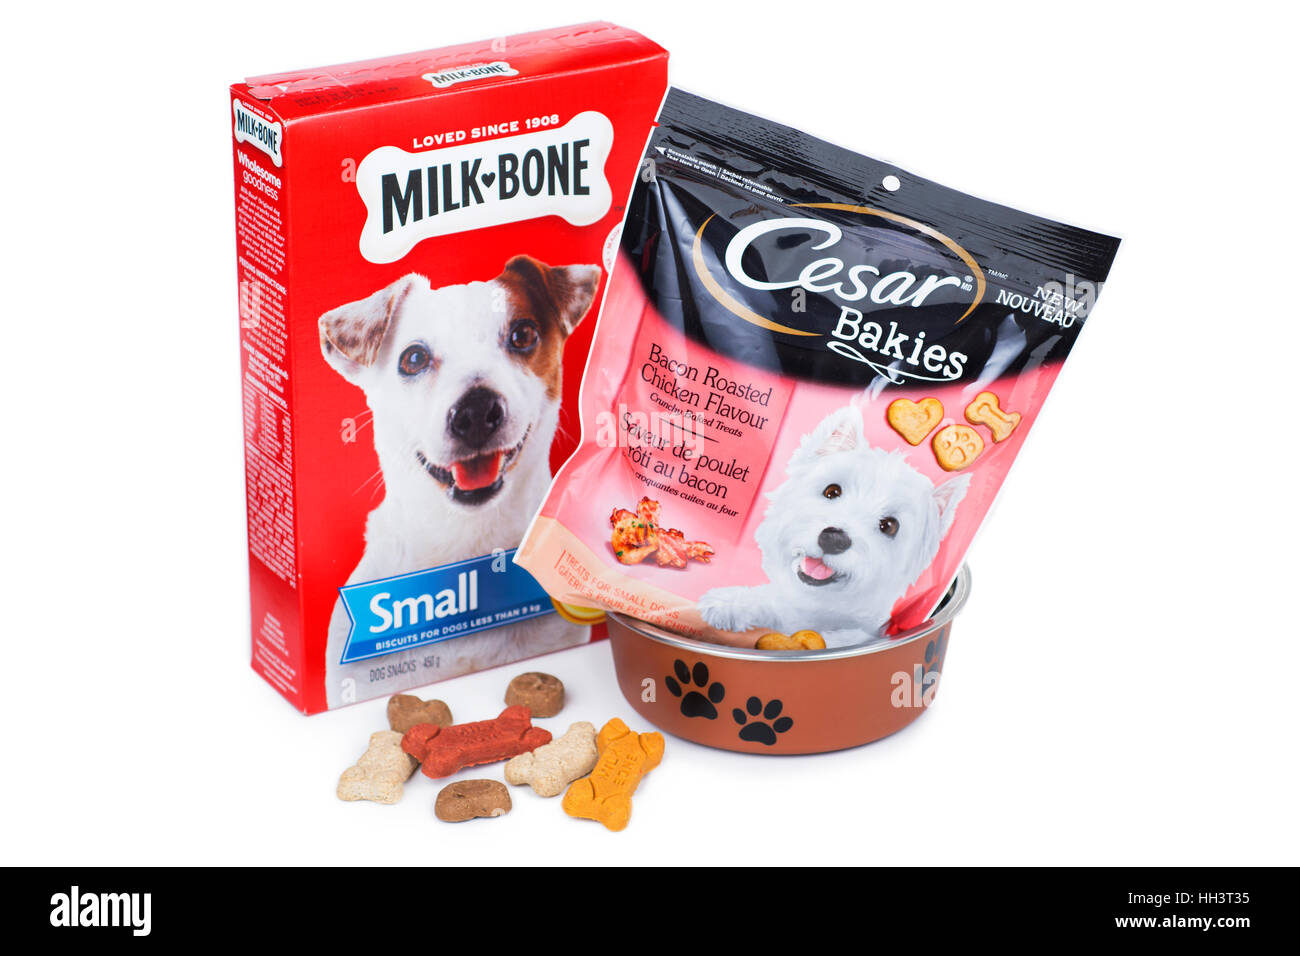 Dog Treats, Milk Bone and Cesar Bakies Packets, Packages - Stock Image